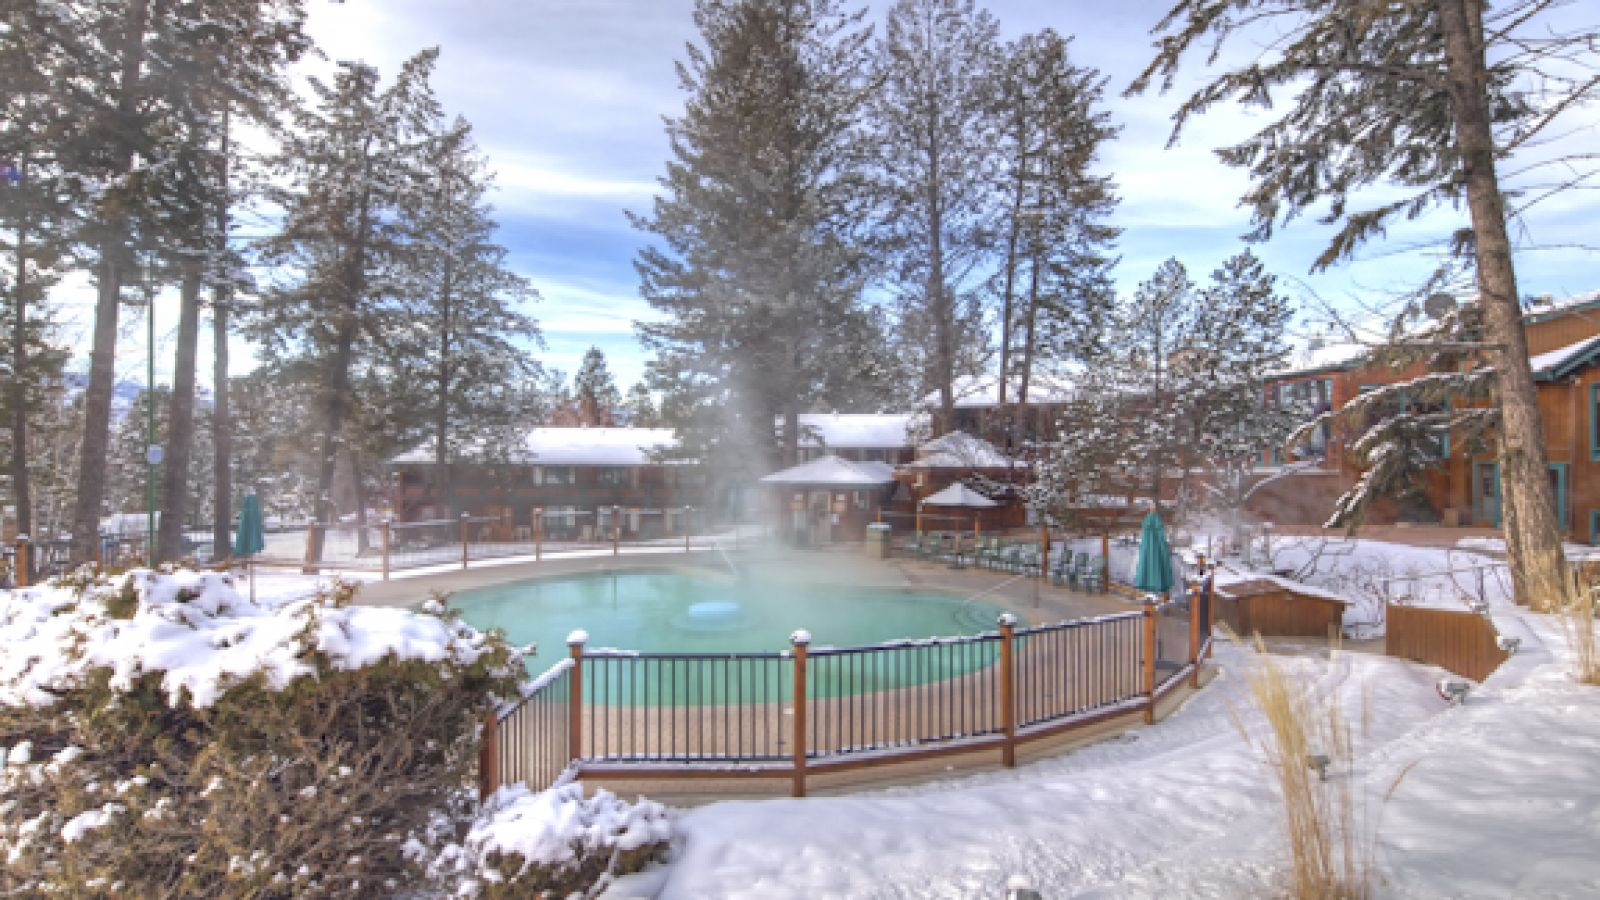 Enjoy the hot pools year-round.